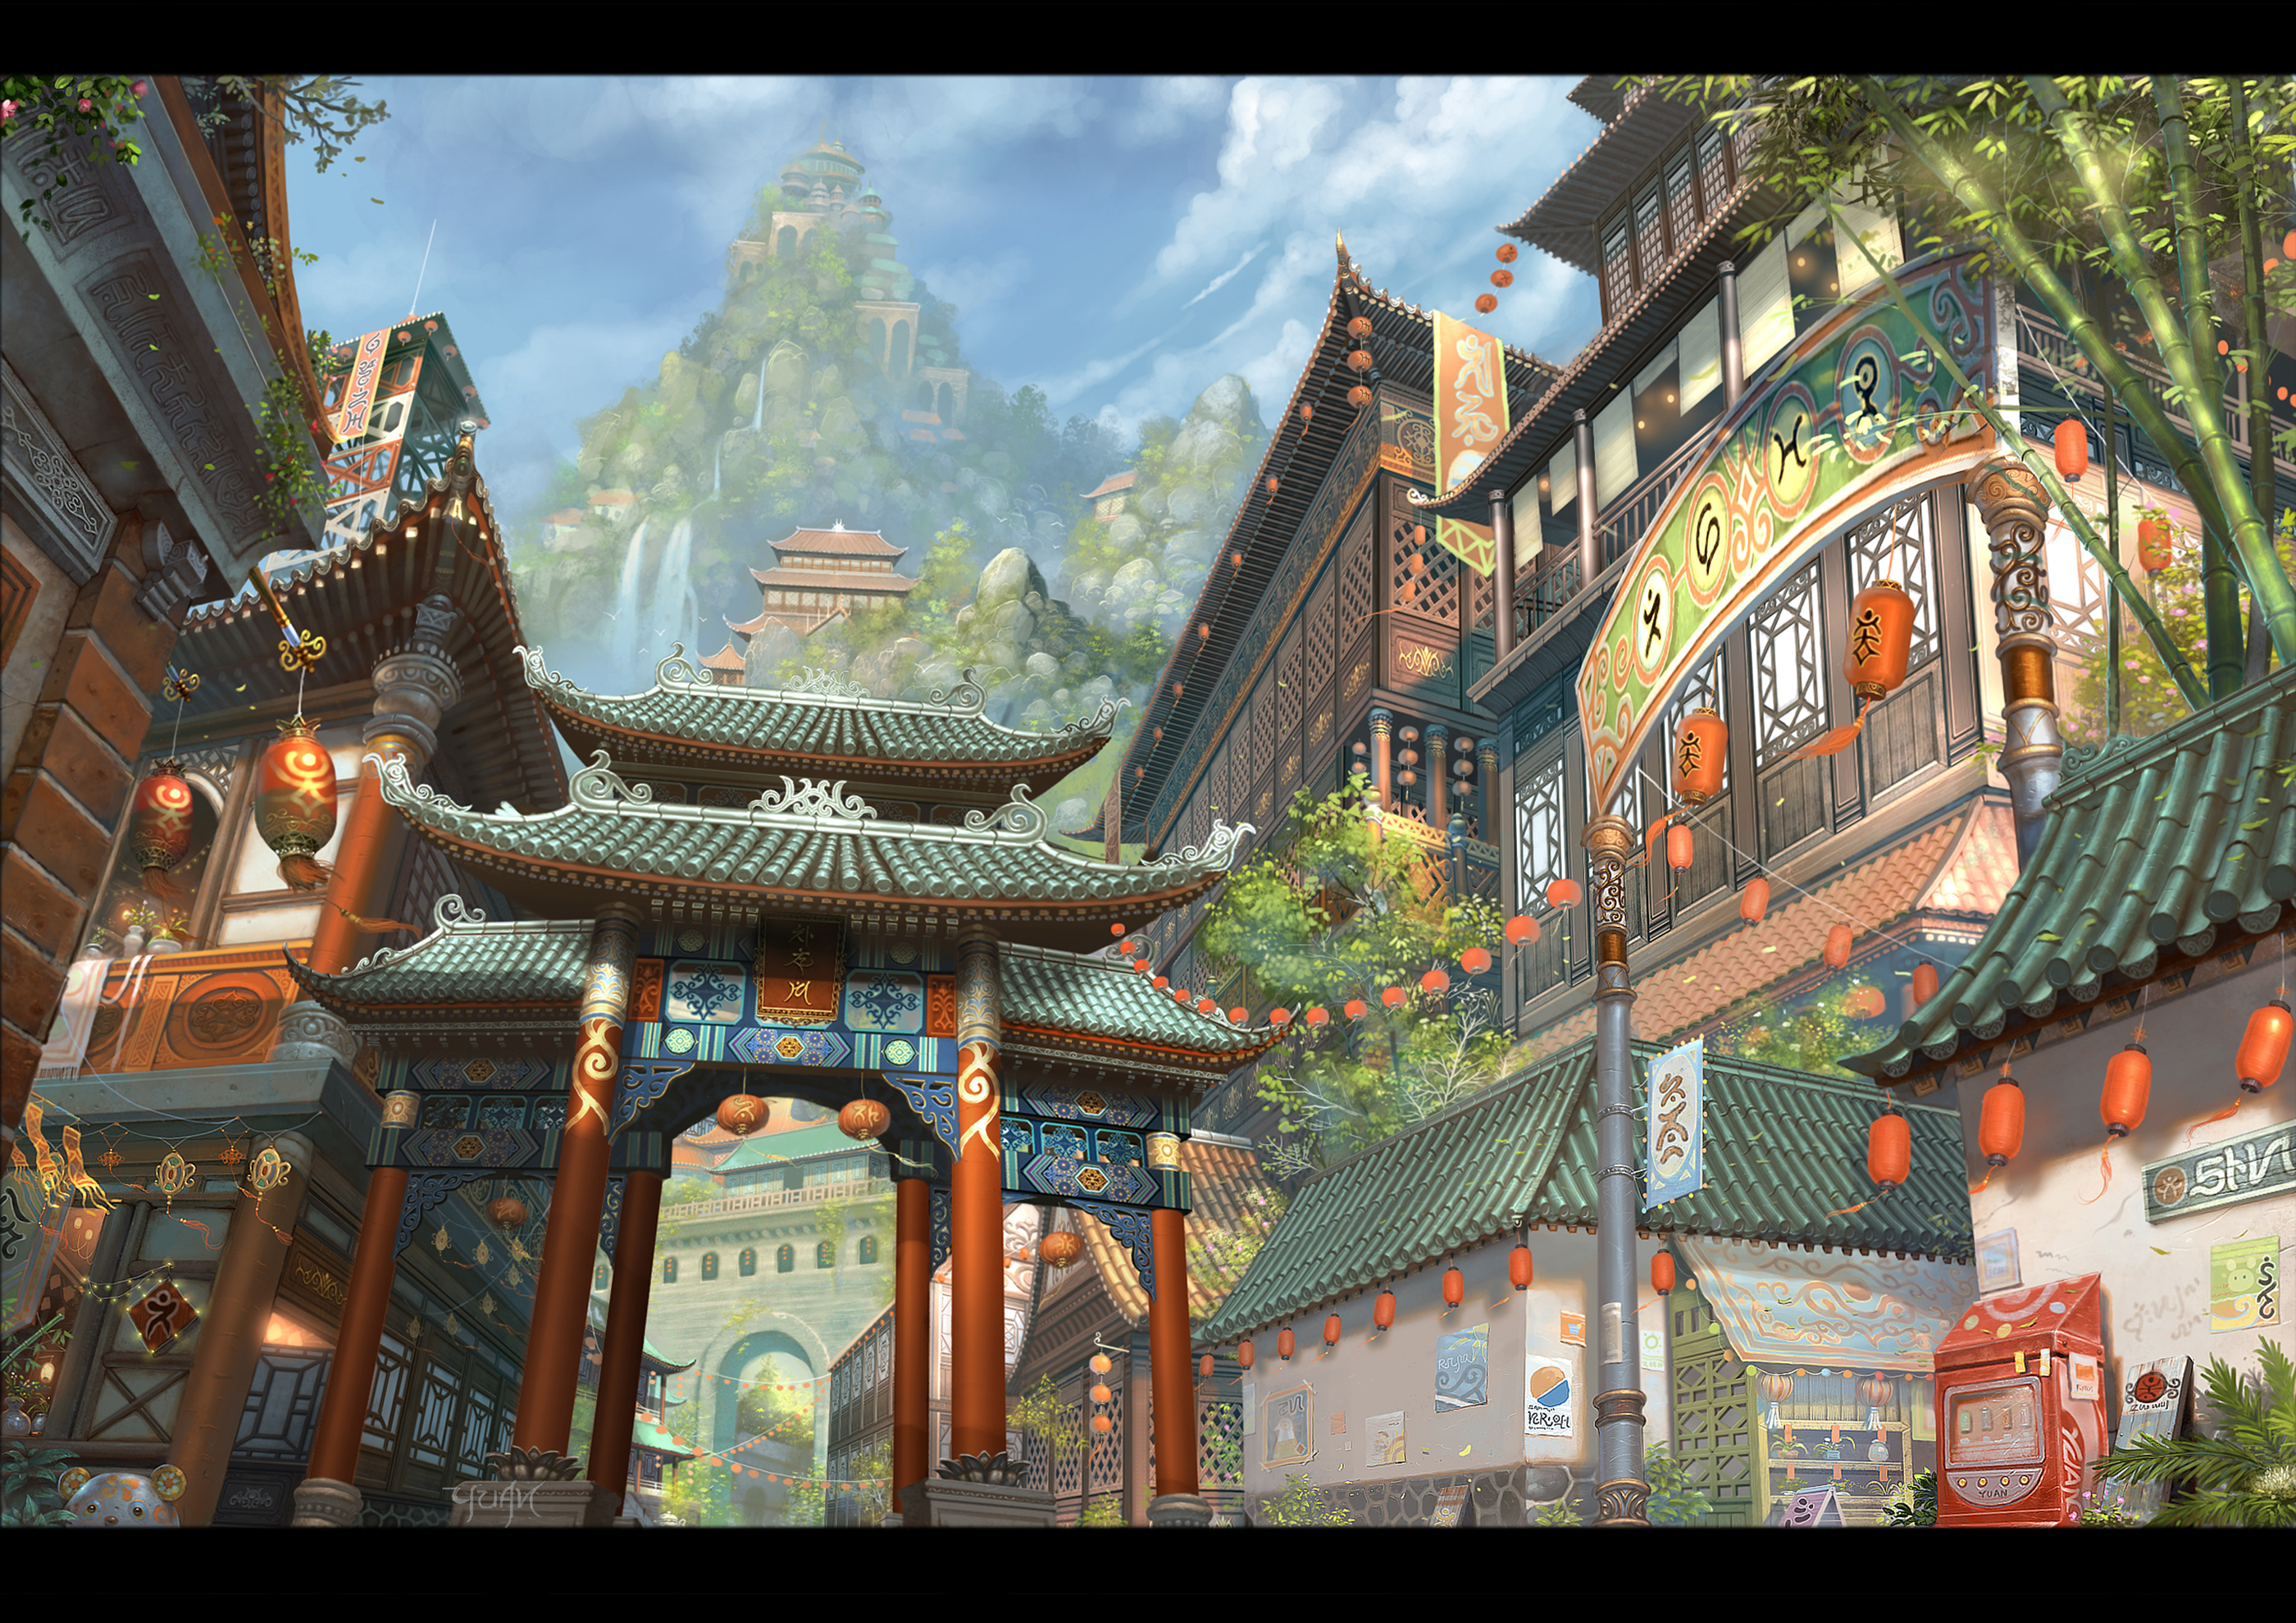 Les digital paintings de Chao Yuan Xu